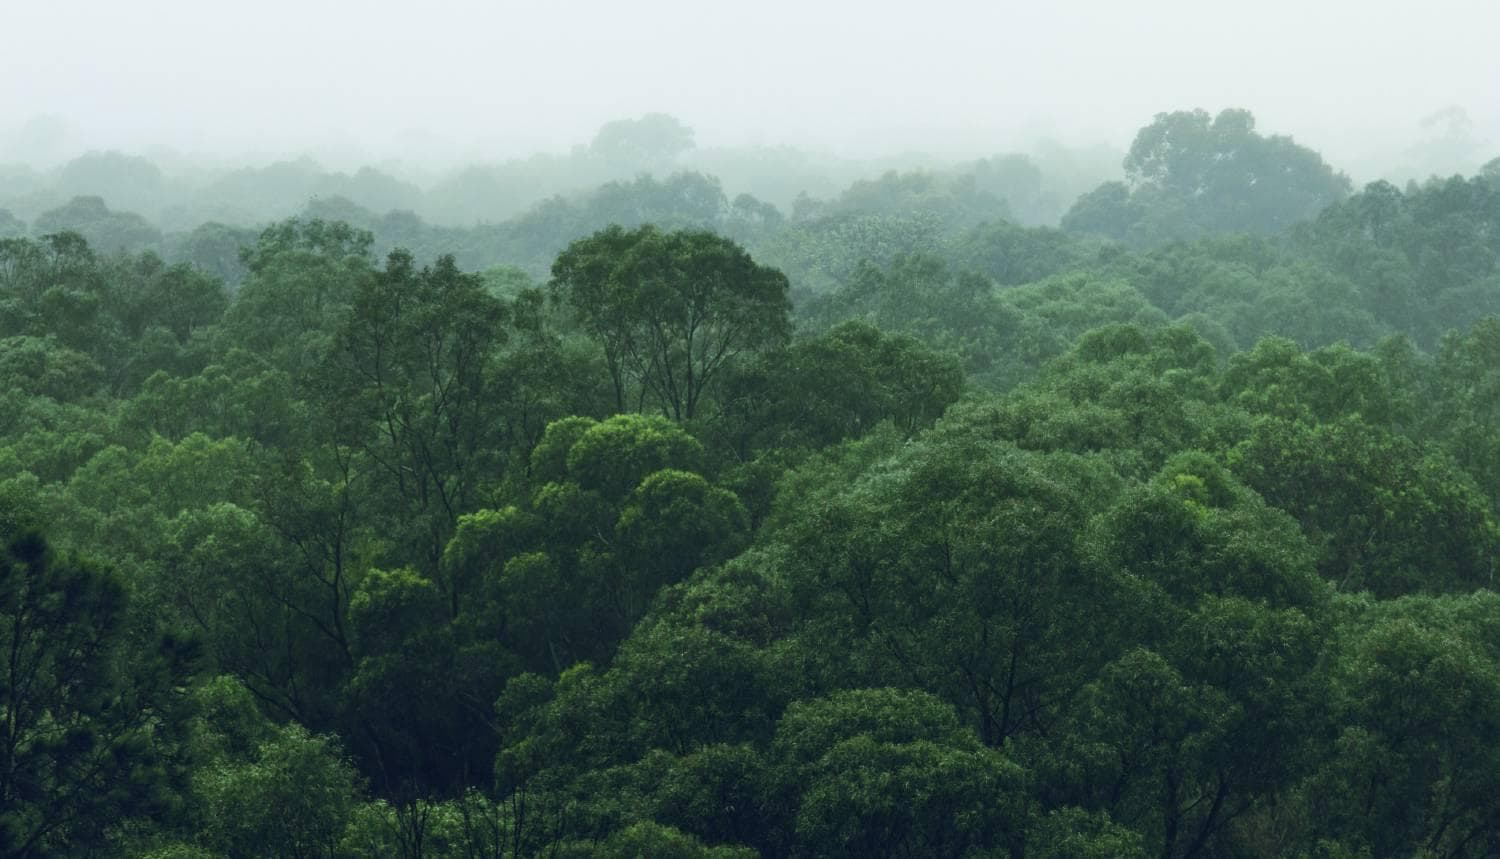 Aerial view of rainforest trees